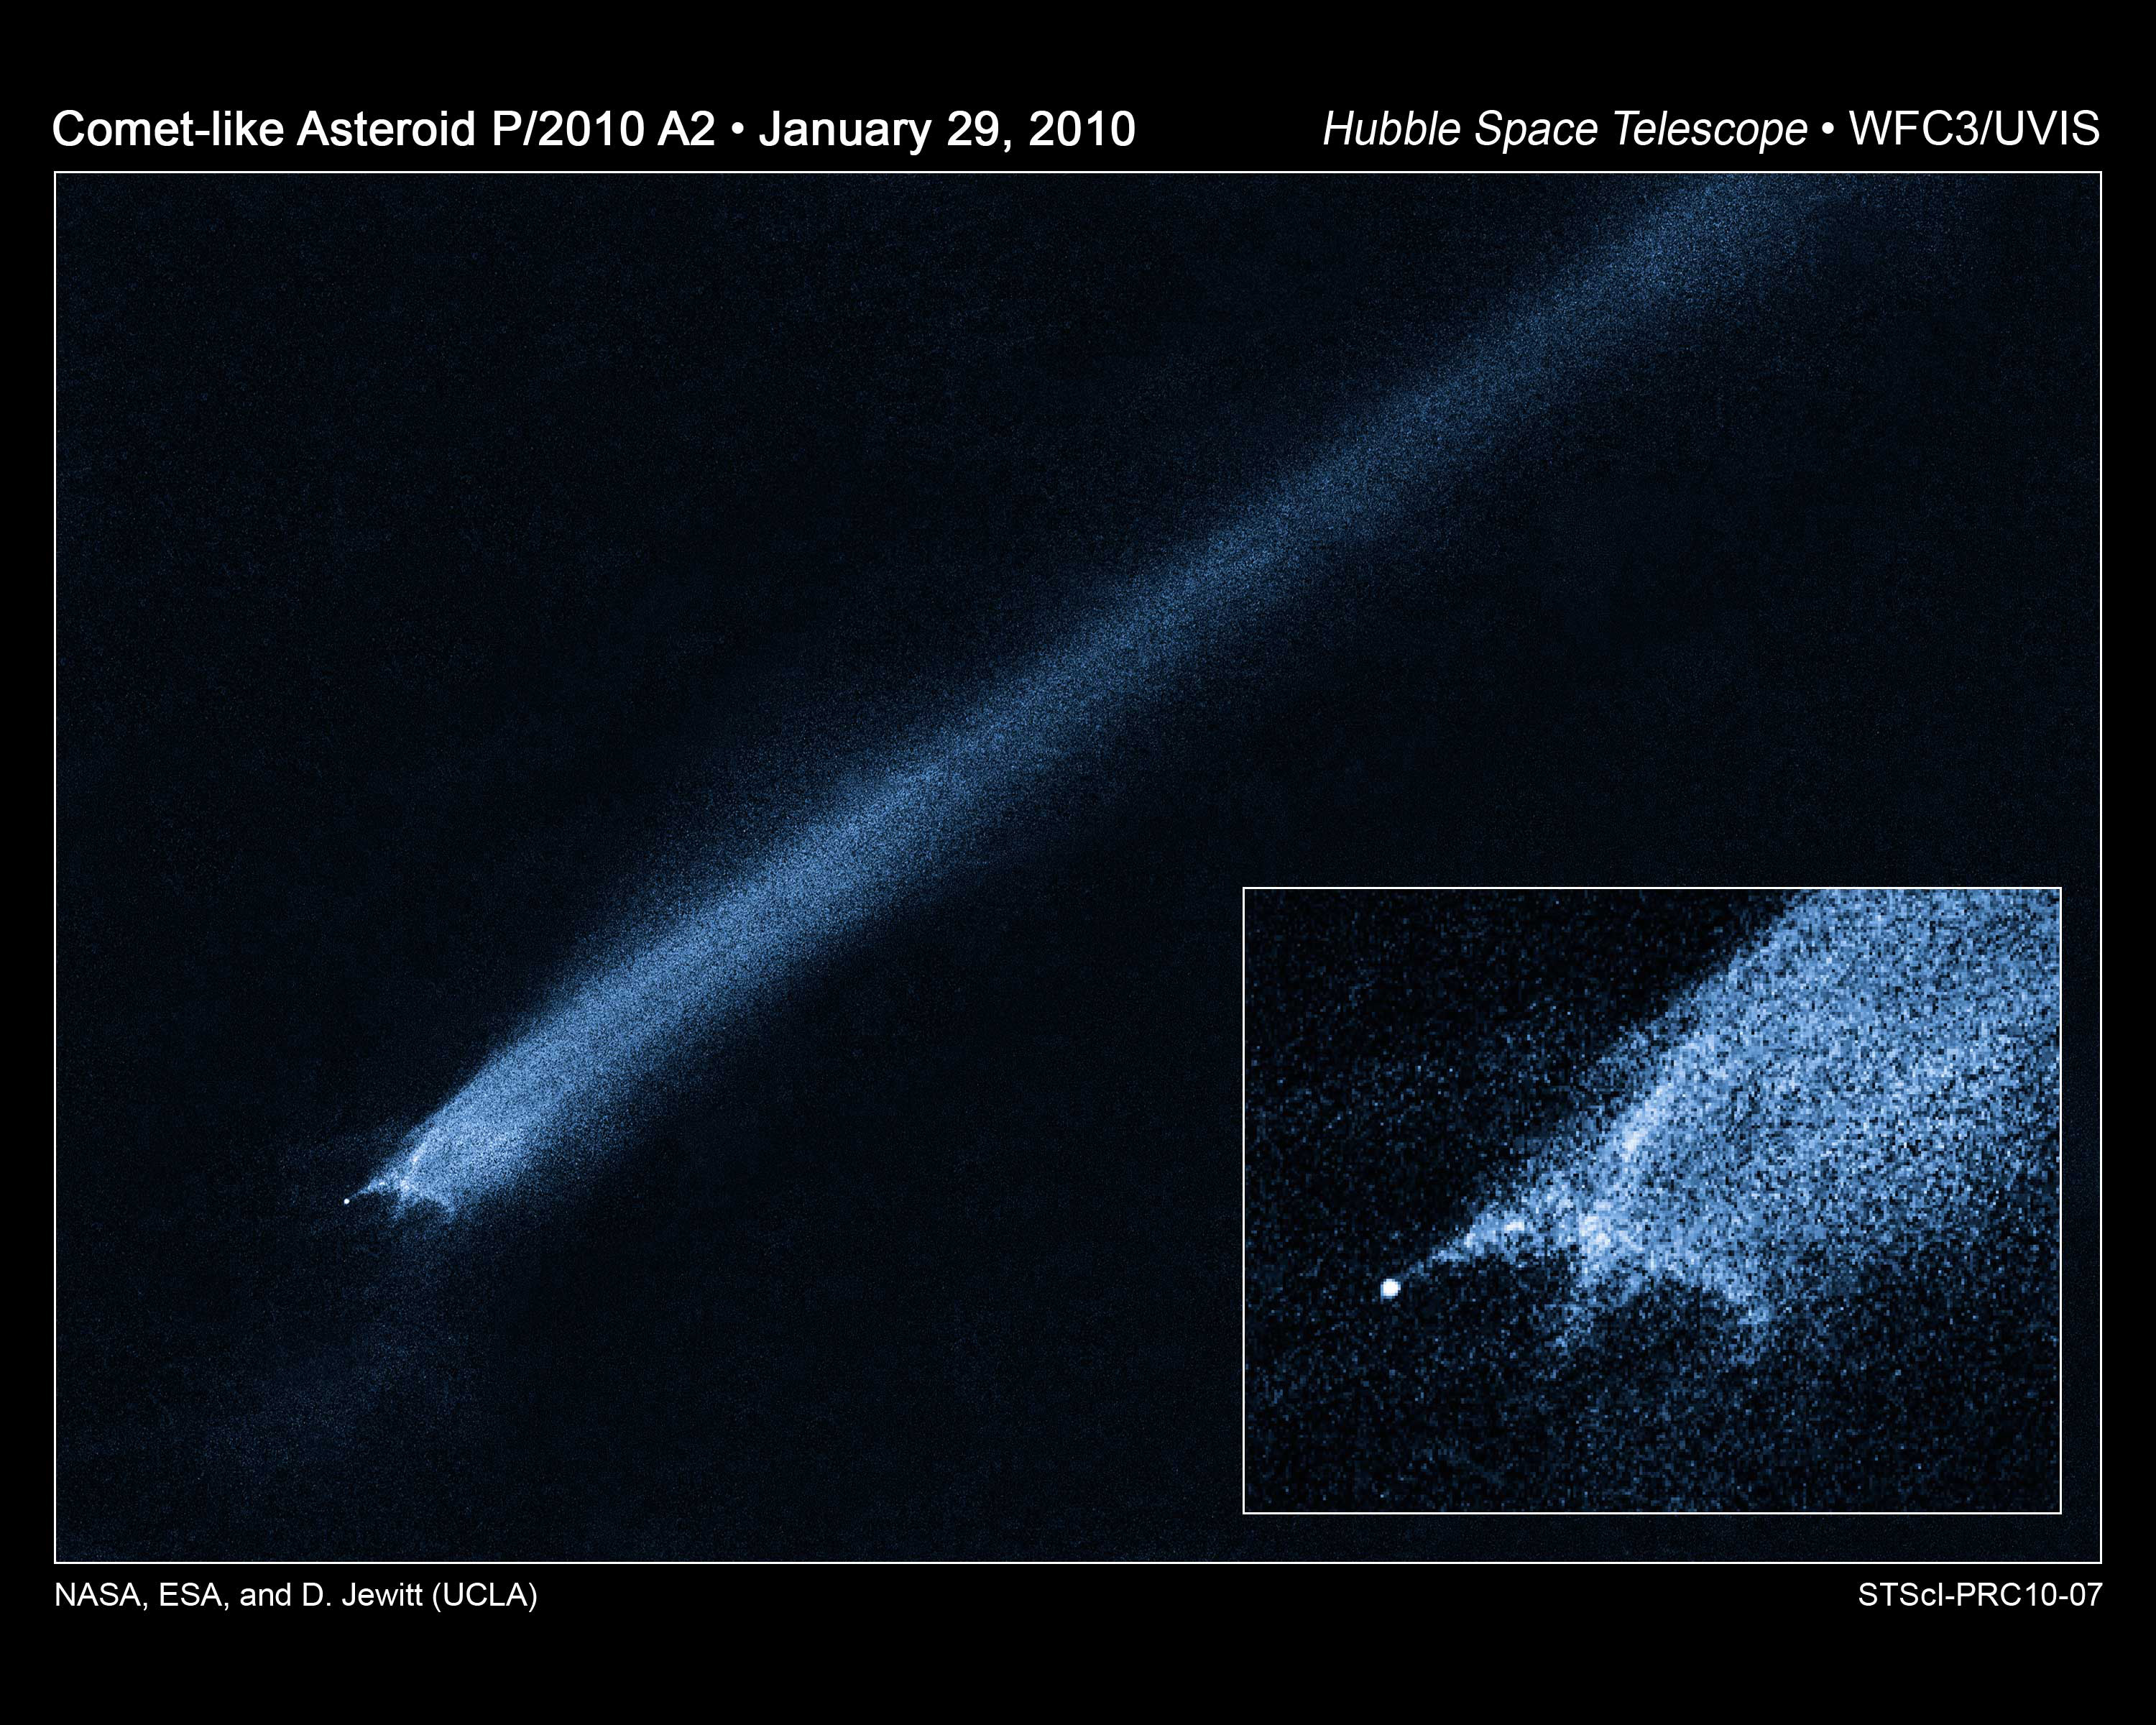 Image of asteroid trailing debris in space.